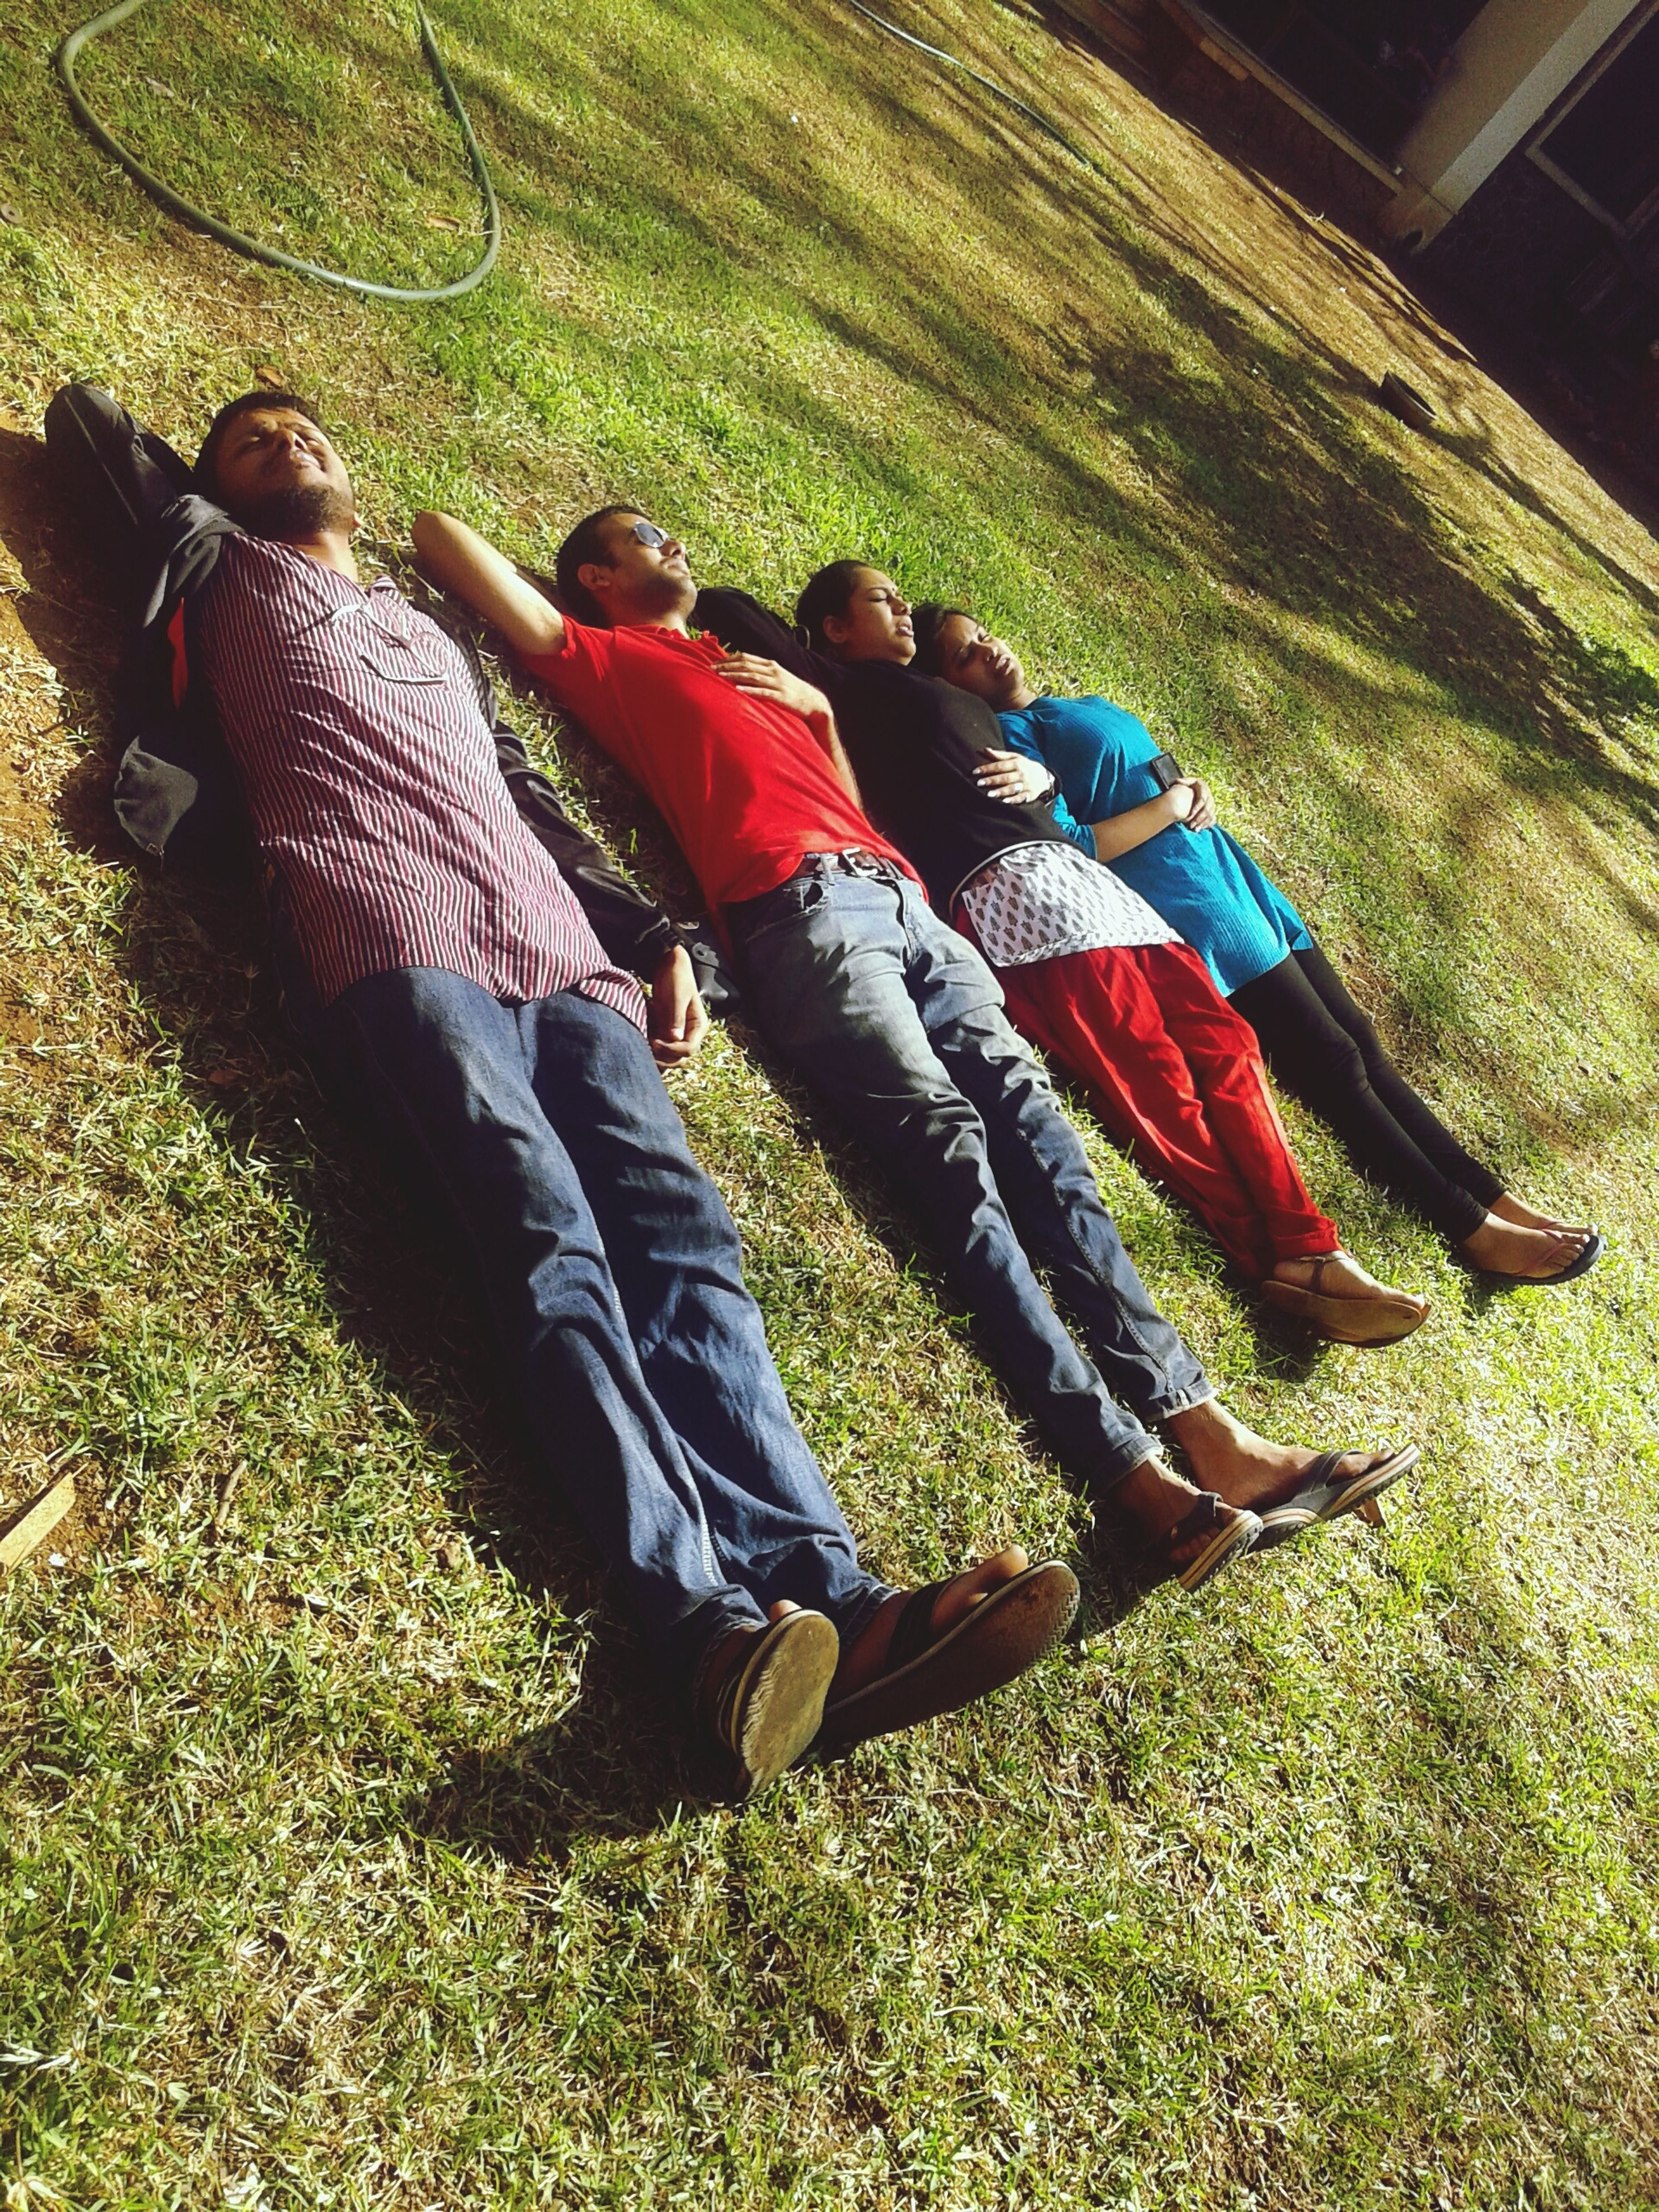 grass, field, grassy, green color, high angle view, men, day, outdoors, shoe, clothing, leisure activity, lifestyles, sunlight, nature, low section, sitting, relaxation, casual clothing